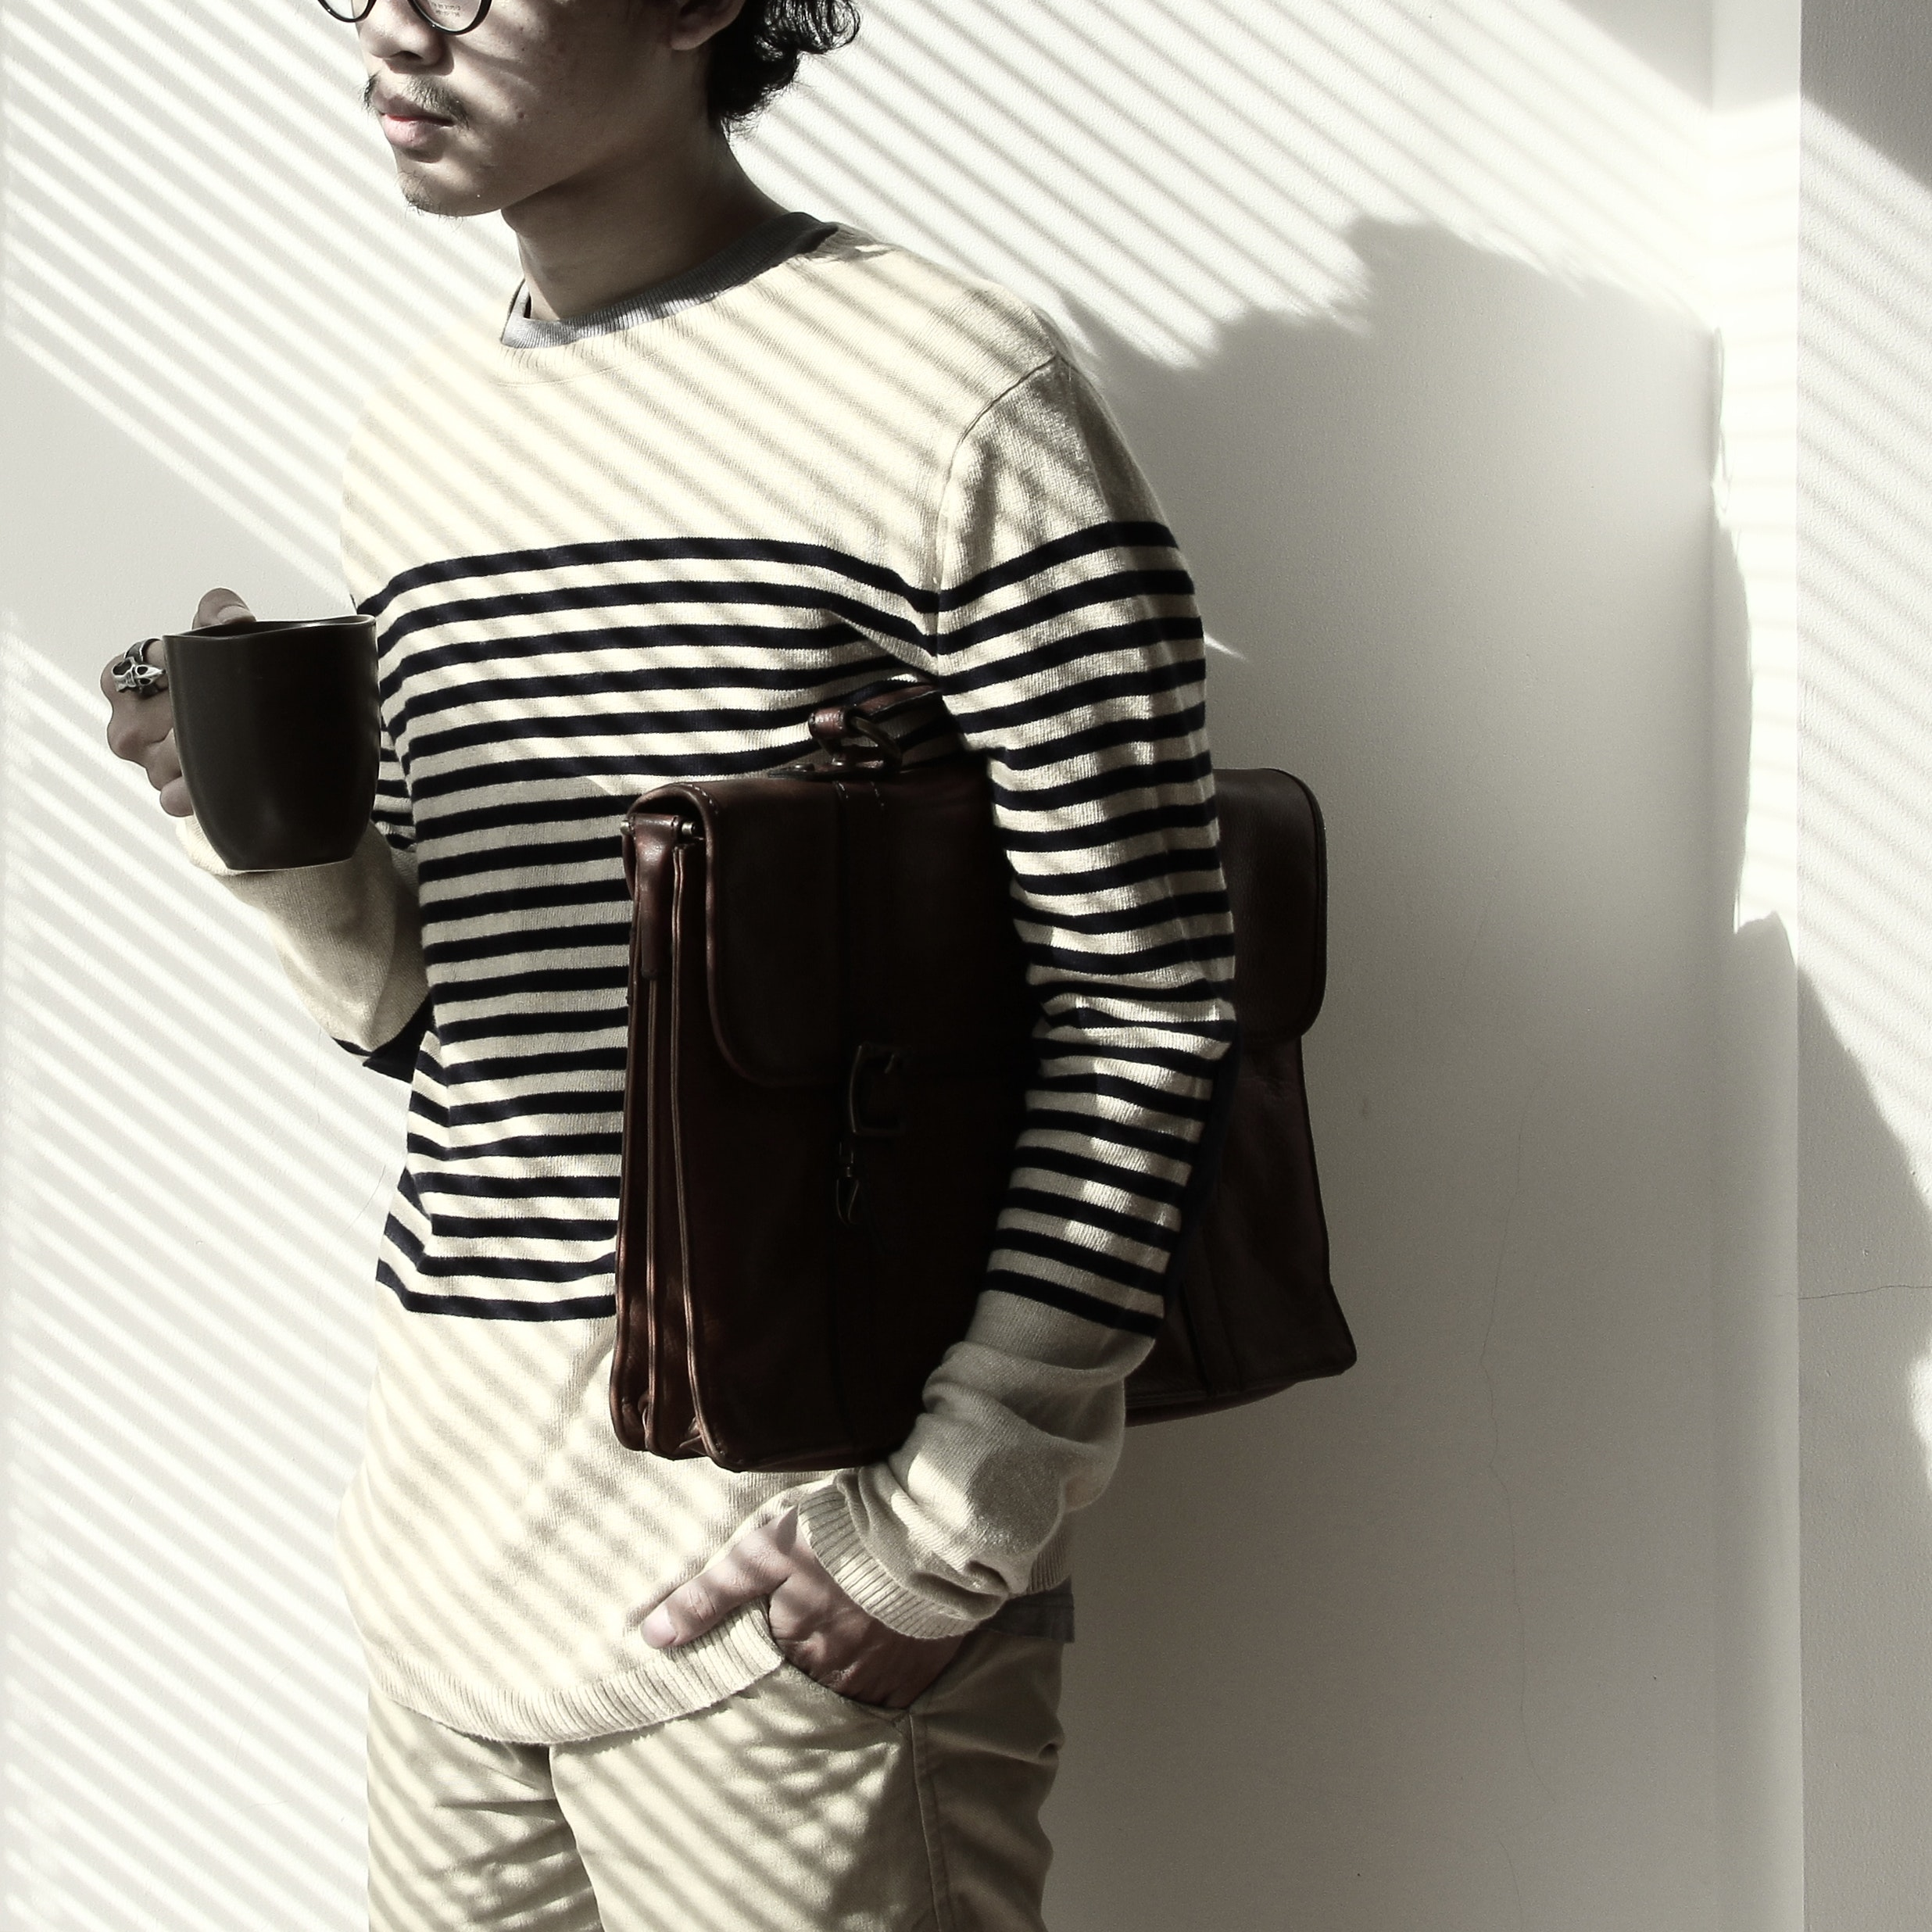 Standing Brunet Person Waring Eyeglasses and White Black Stripe Sweater Holding Mug and Briefcase, Business, Businessman, Coffee, Fashion, HQ Photo